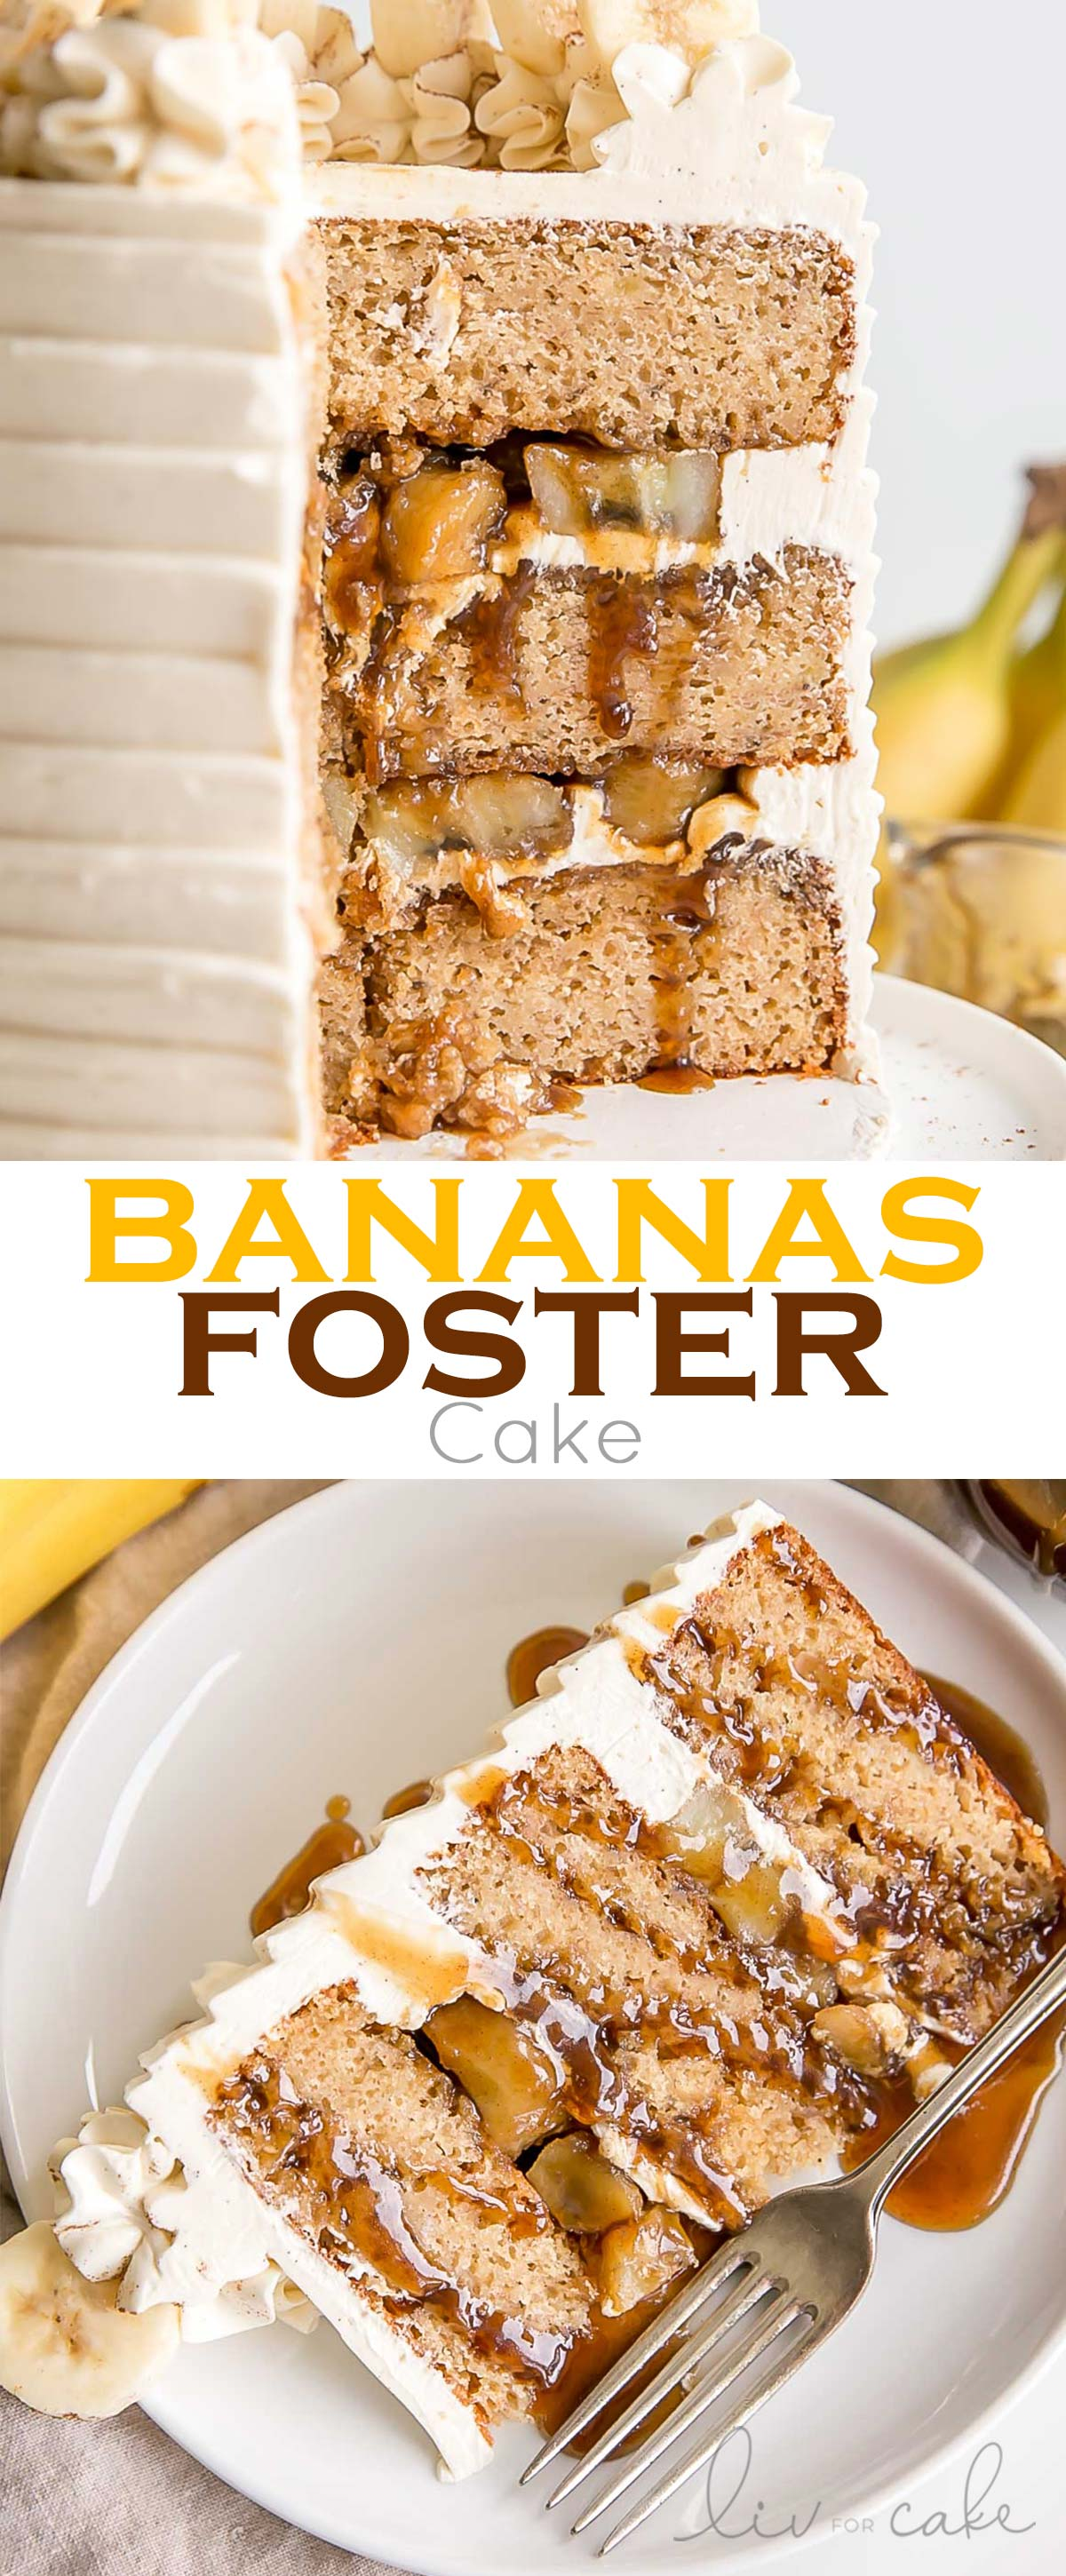 This Bananas Foster Cake collage